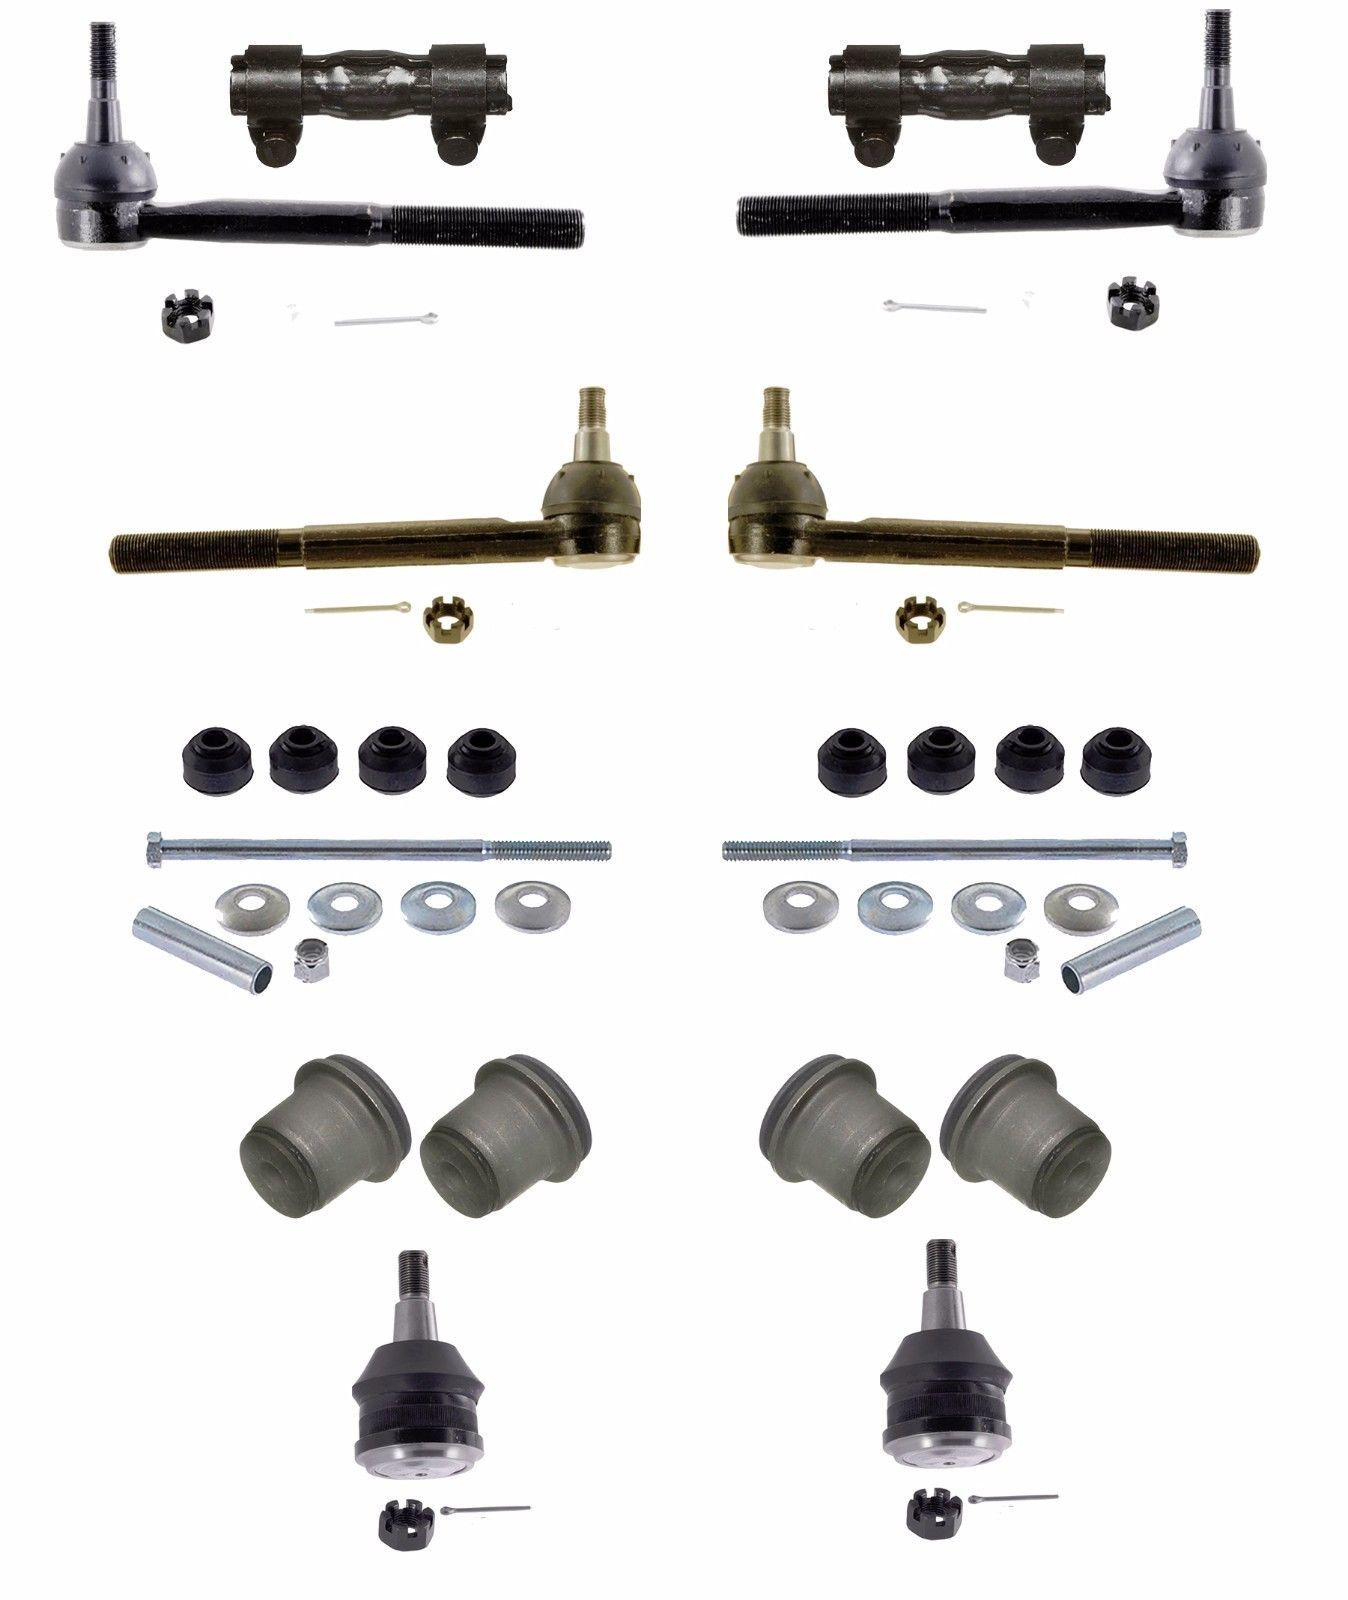 Chevy 2500 12 Piece Tie Rod Ball Joint + More  Front End Kit 1993-00 7200 lb GVW - $88.49